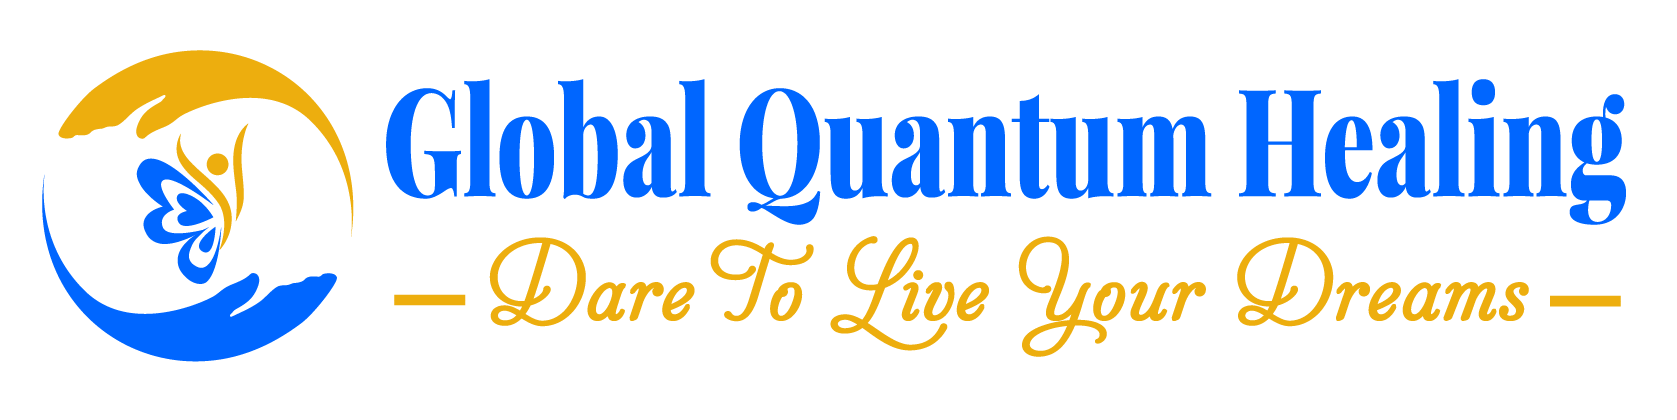 Global Quantum Healing: Live Your Passion, Purpose & Prosper  - Jenny Ngo, RN, MSN